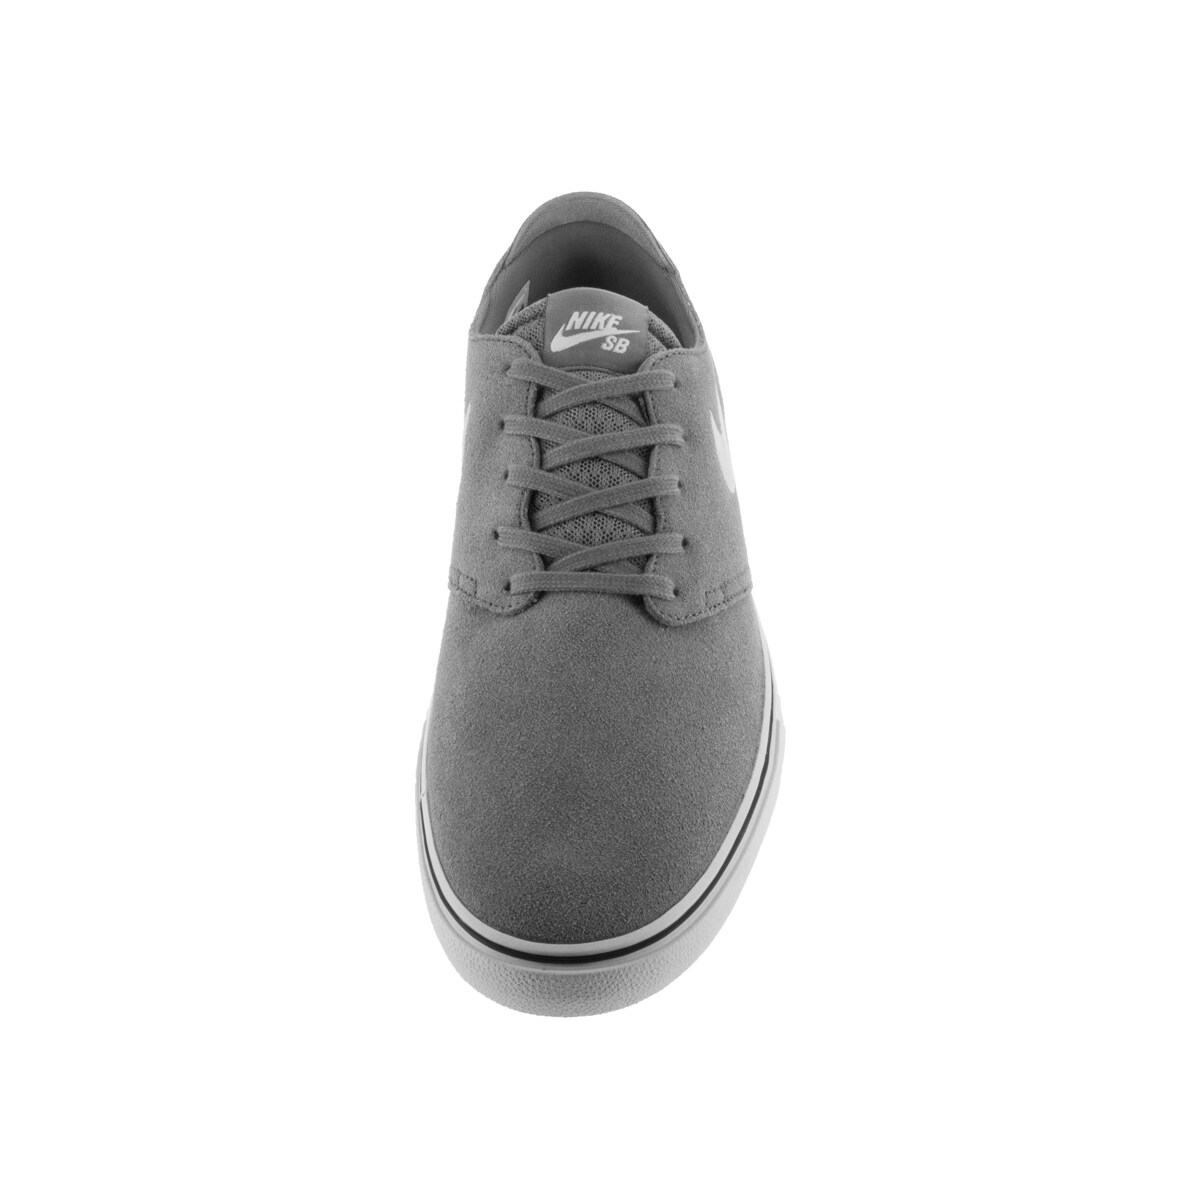 Nike Men's Zoom Oneshot Sb Cool Grey/White/Gm Lght Brown/Black Skate Shoe -  Free Shipping Today - Overstock.com - 19160475